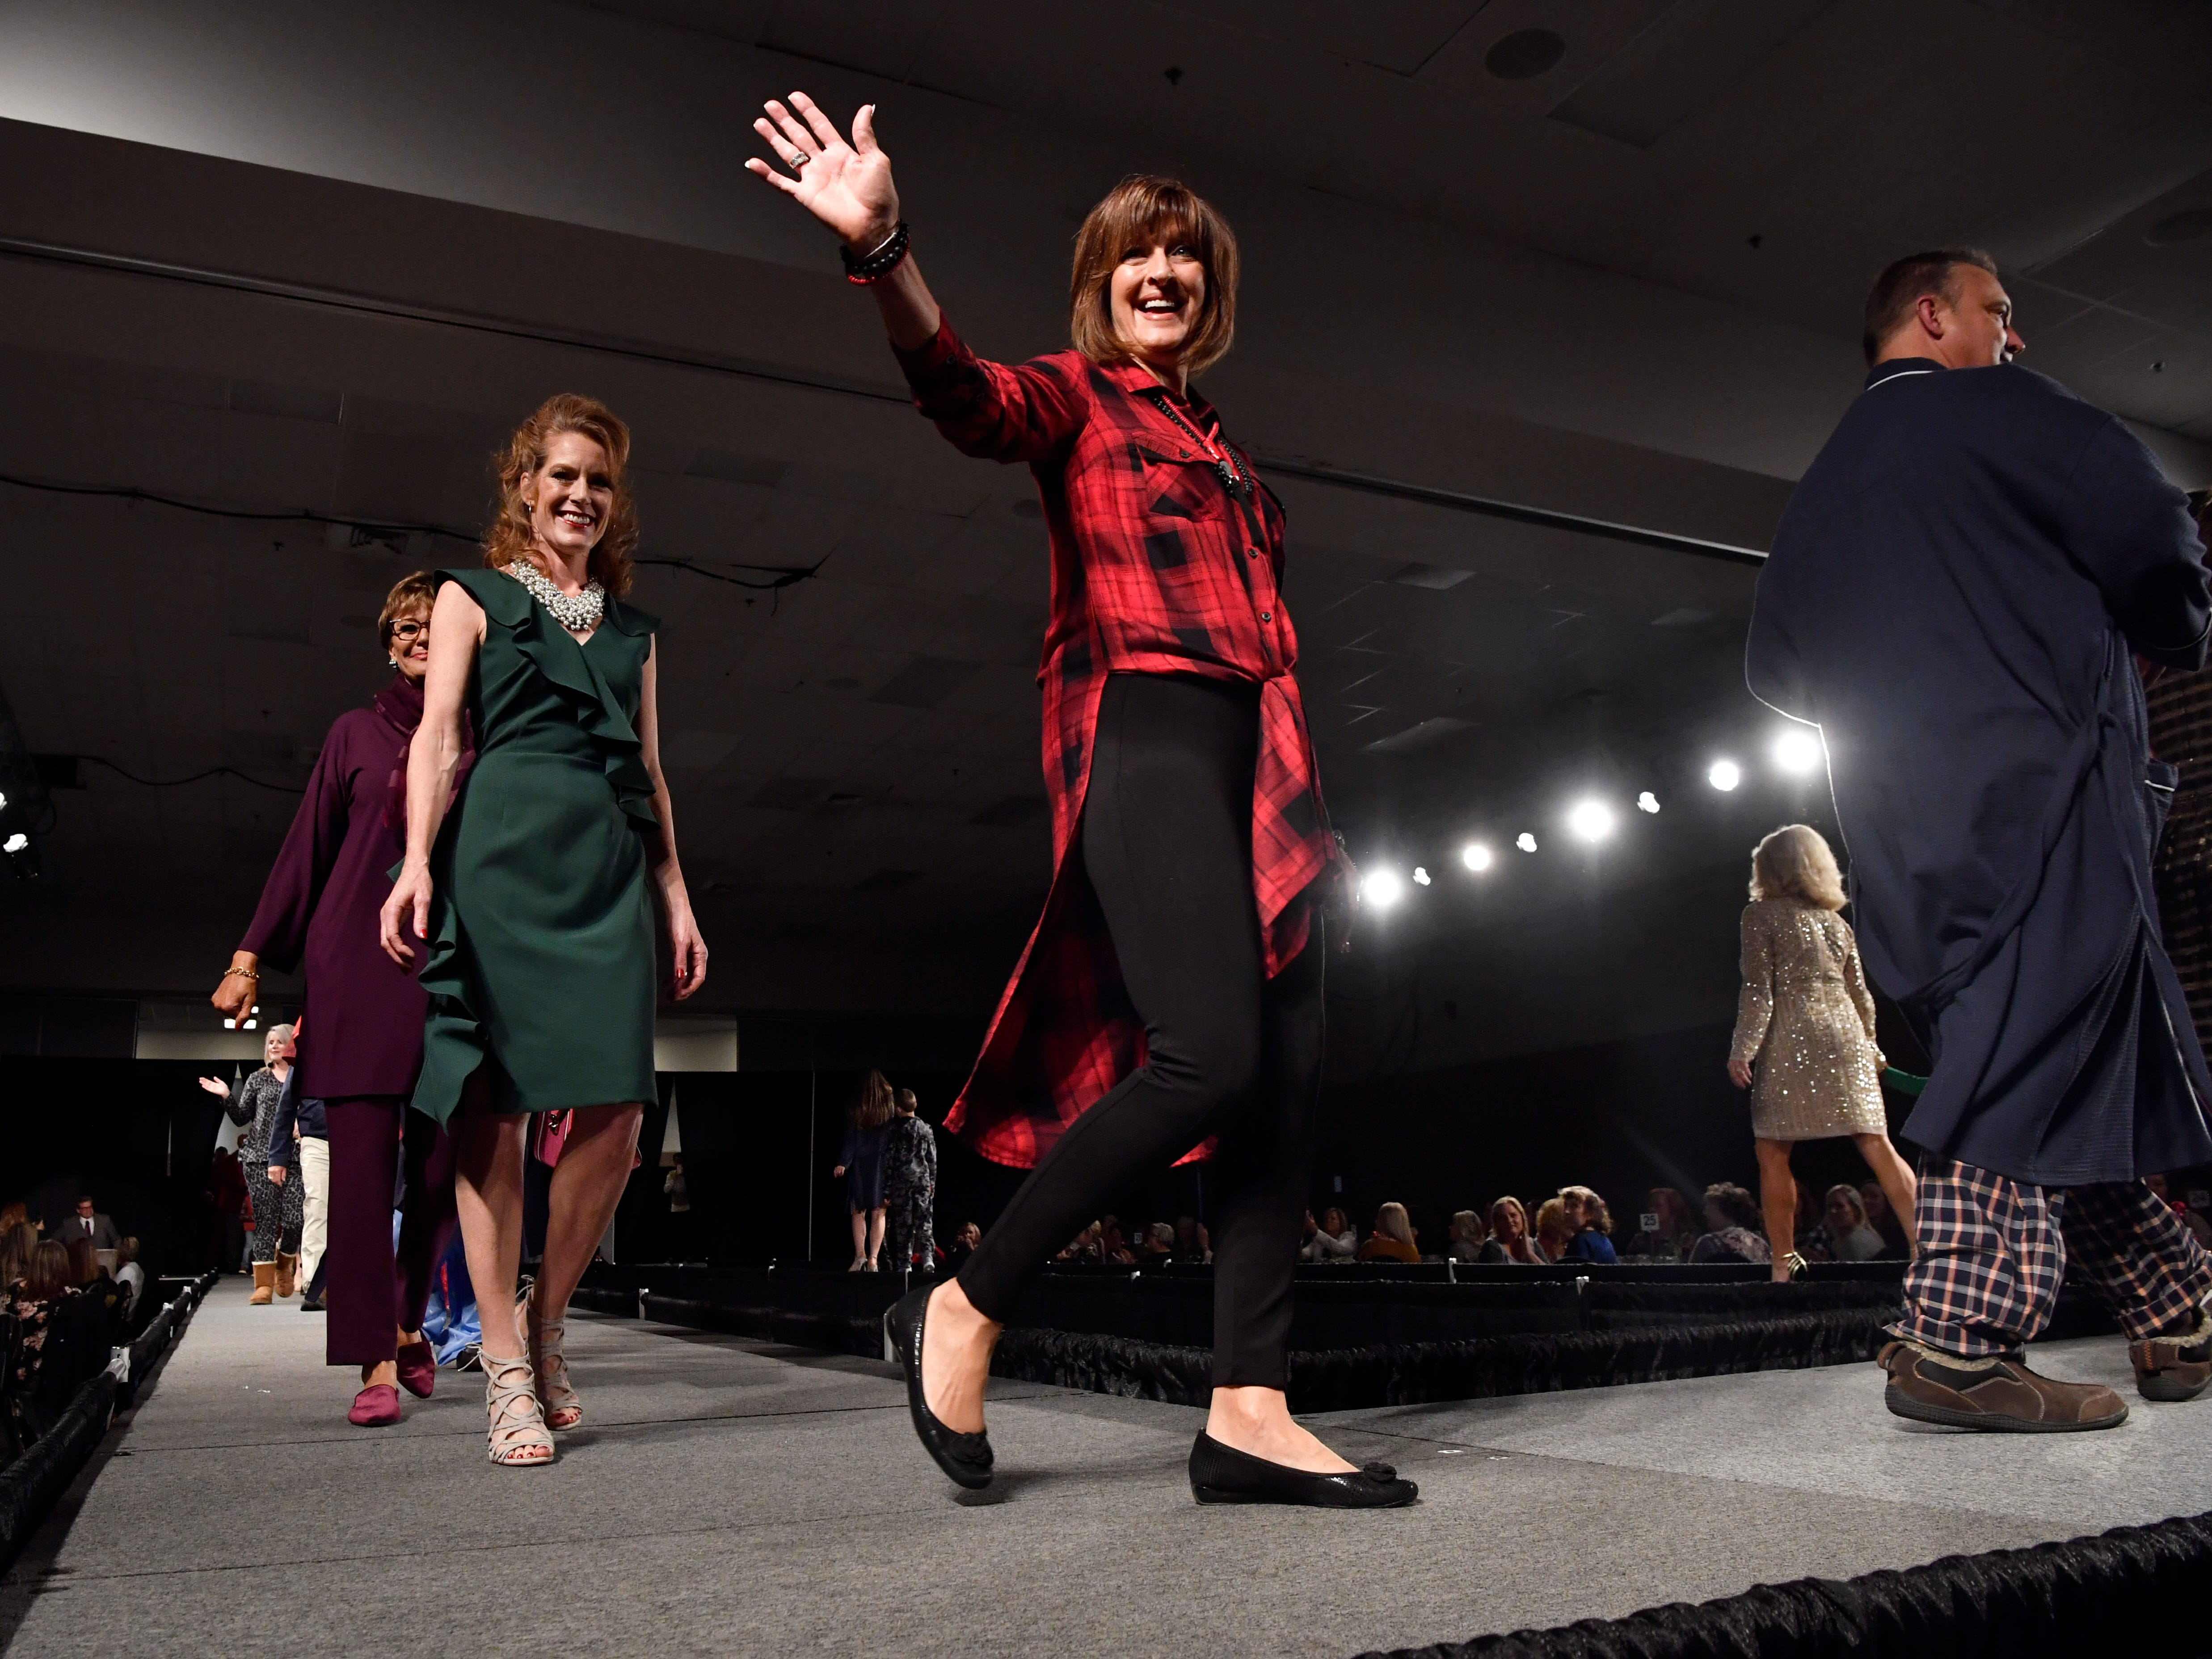 Nancy Smith waves to the crowd at the conclusion of the fashion show luncheon during Friday's Junior League of Abilene Christmas Carousel Nov. 2, 2018. The holiday shopping event at the Abilene Convention Center ends Sunday.